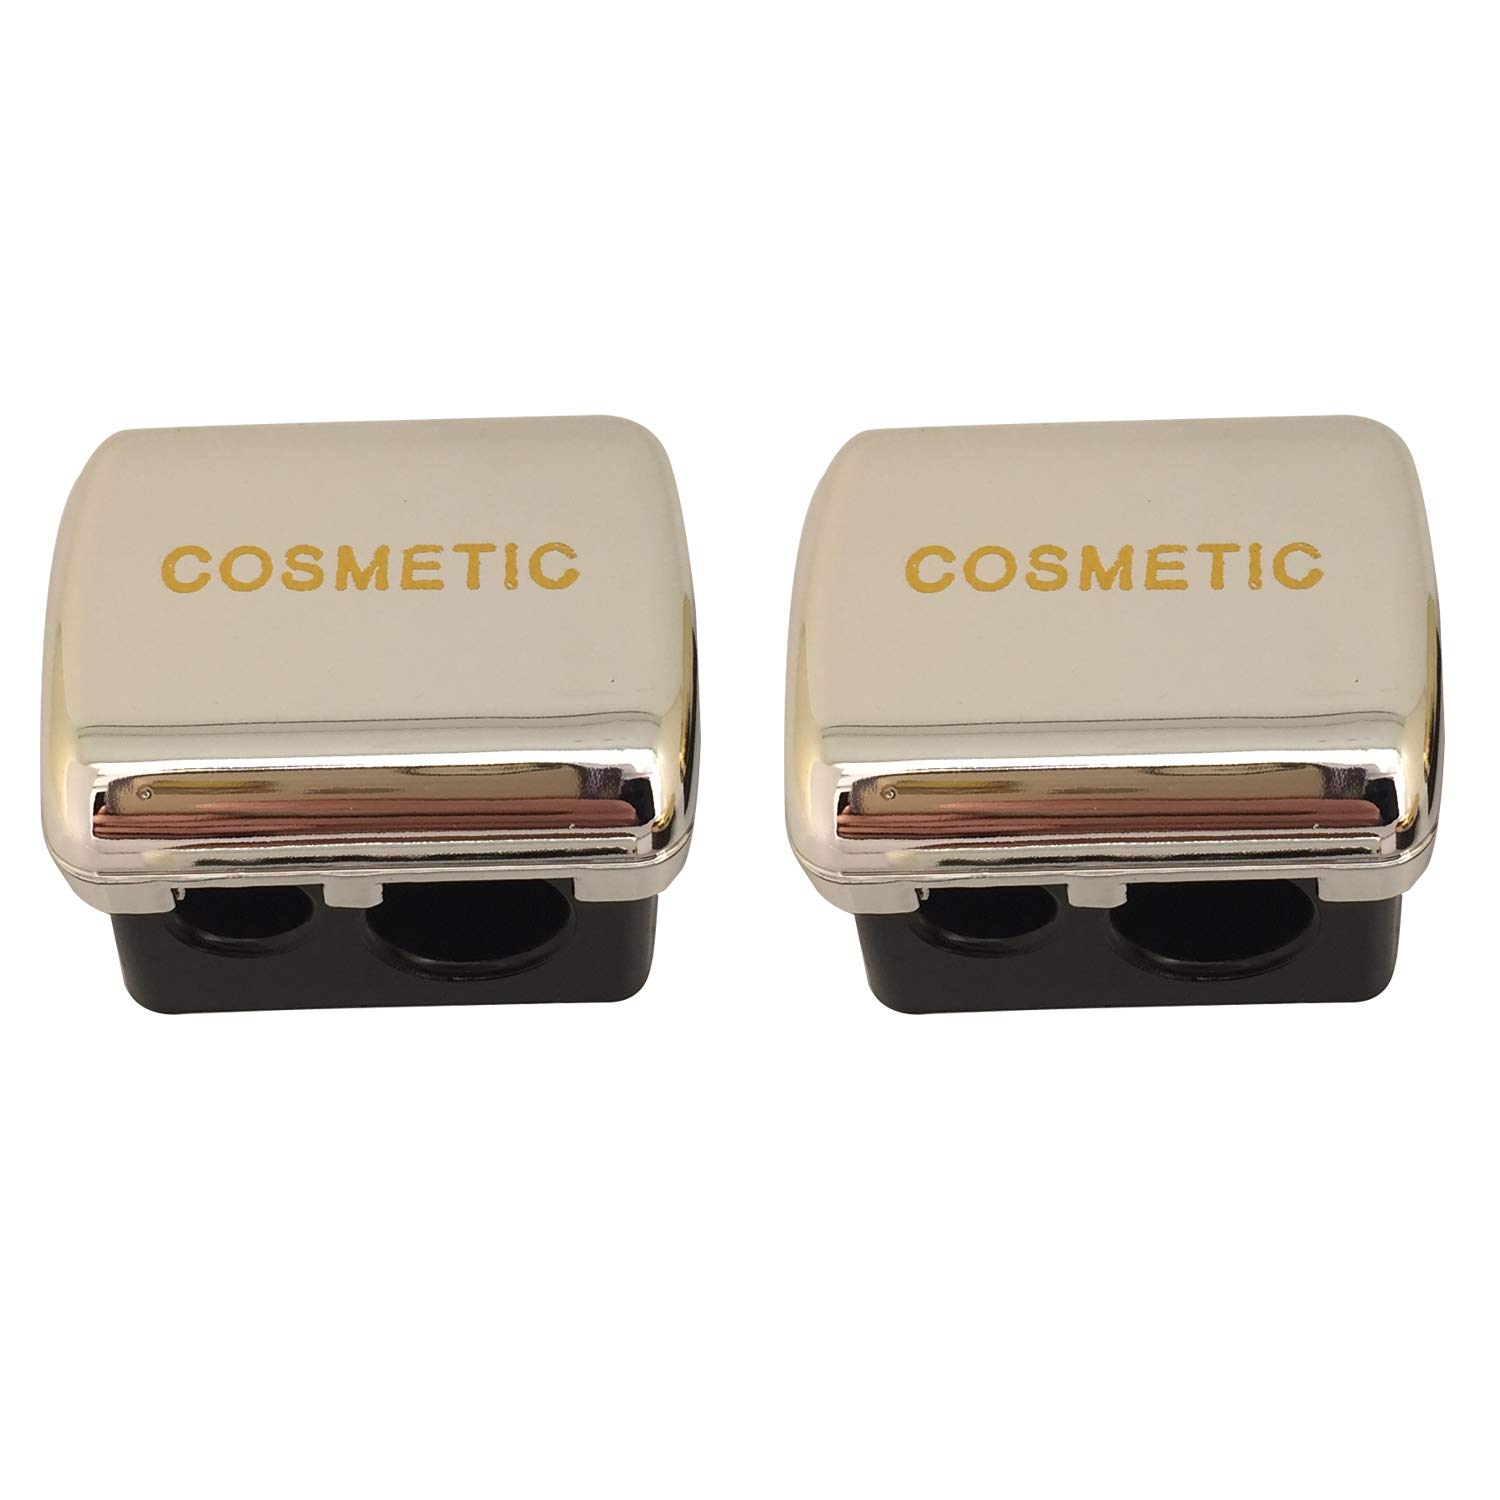 Phoenix Mall JOSALINAS Dual Directly managed store Makeup Sharpener 2 for Eyebrow Ey Cosmetic pack